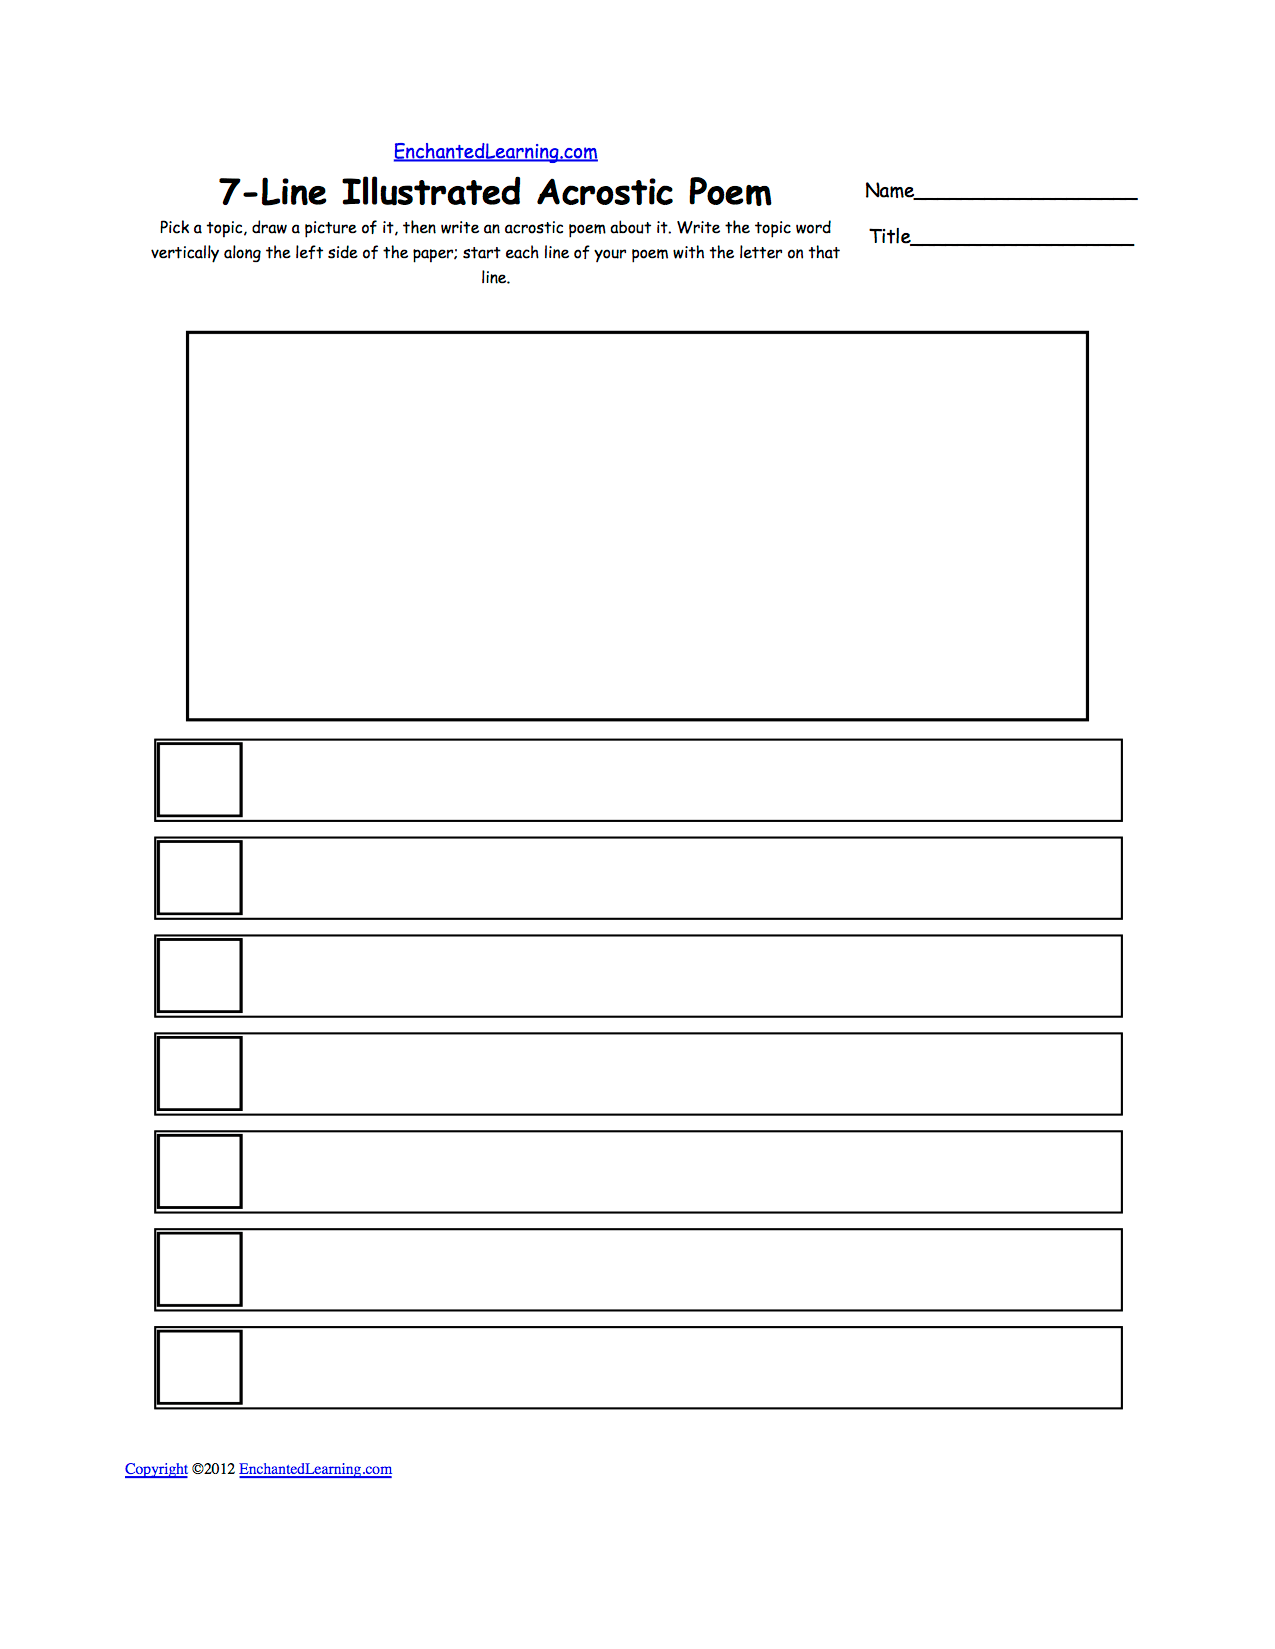 Blank Illustrated Acrostic Poem Worksheets Worksheet